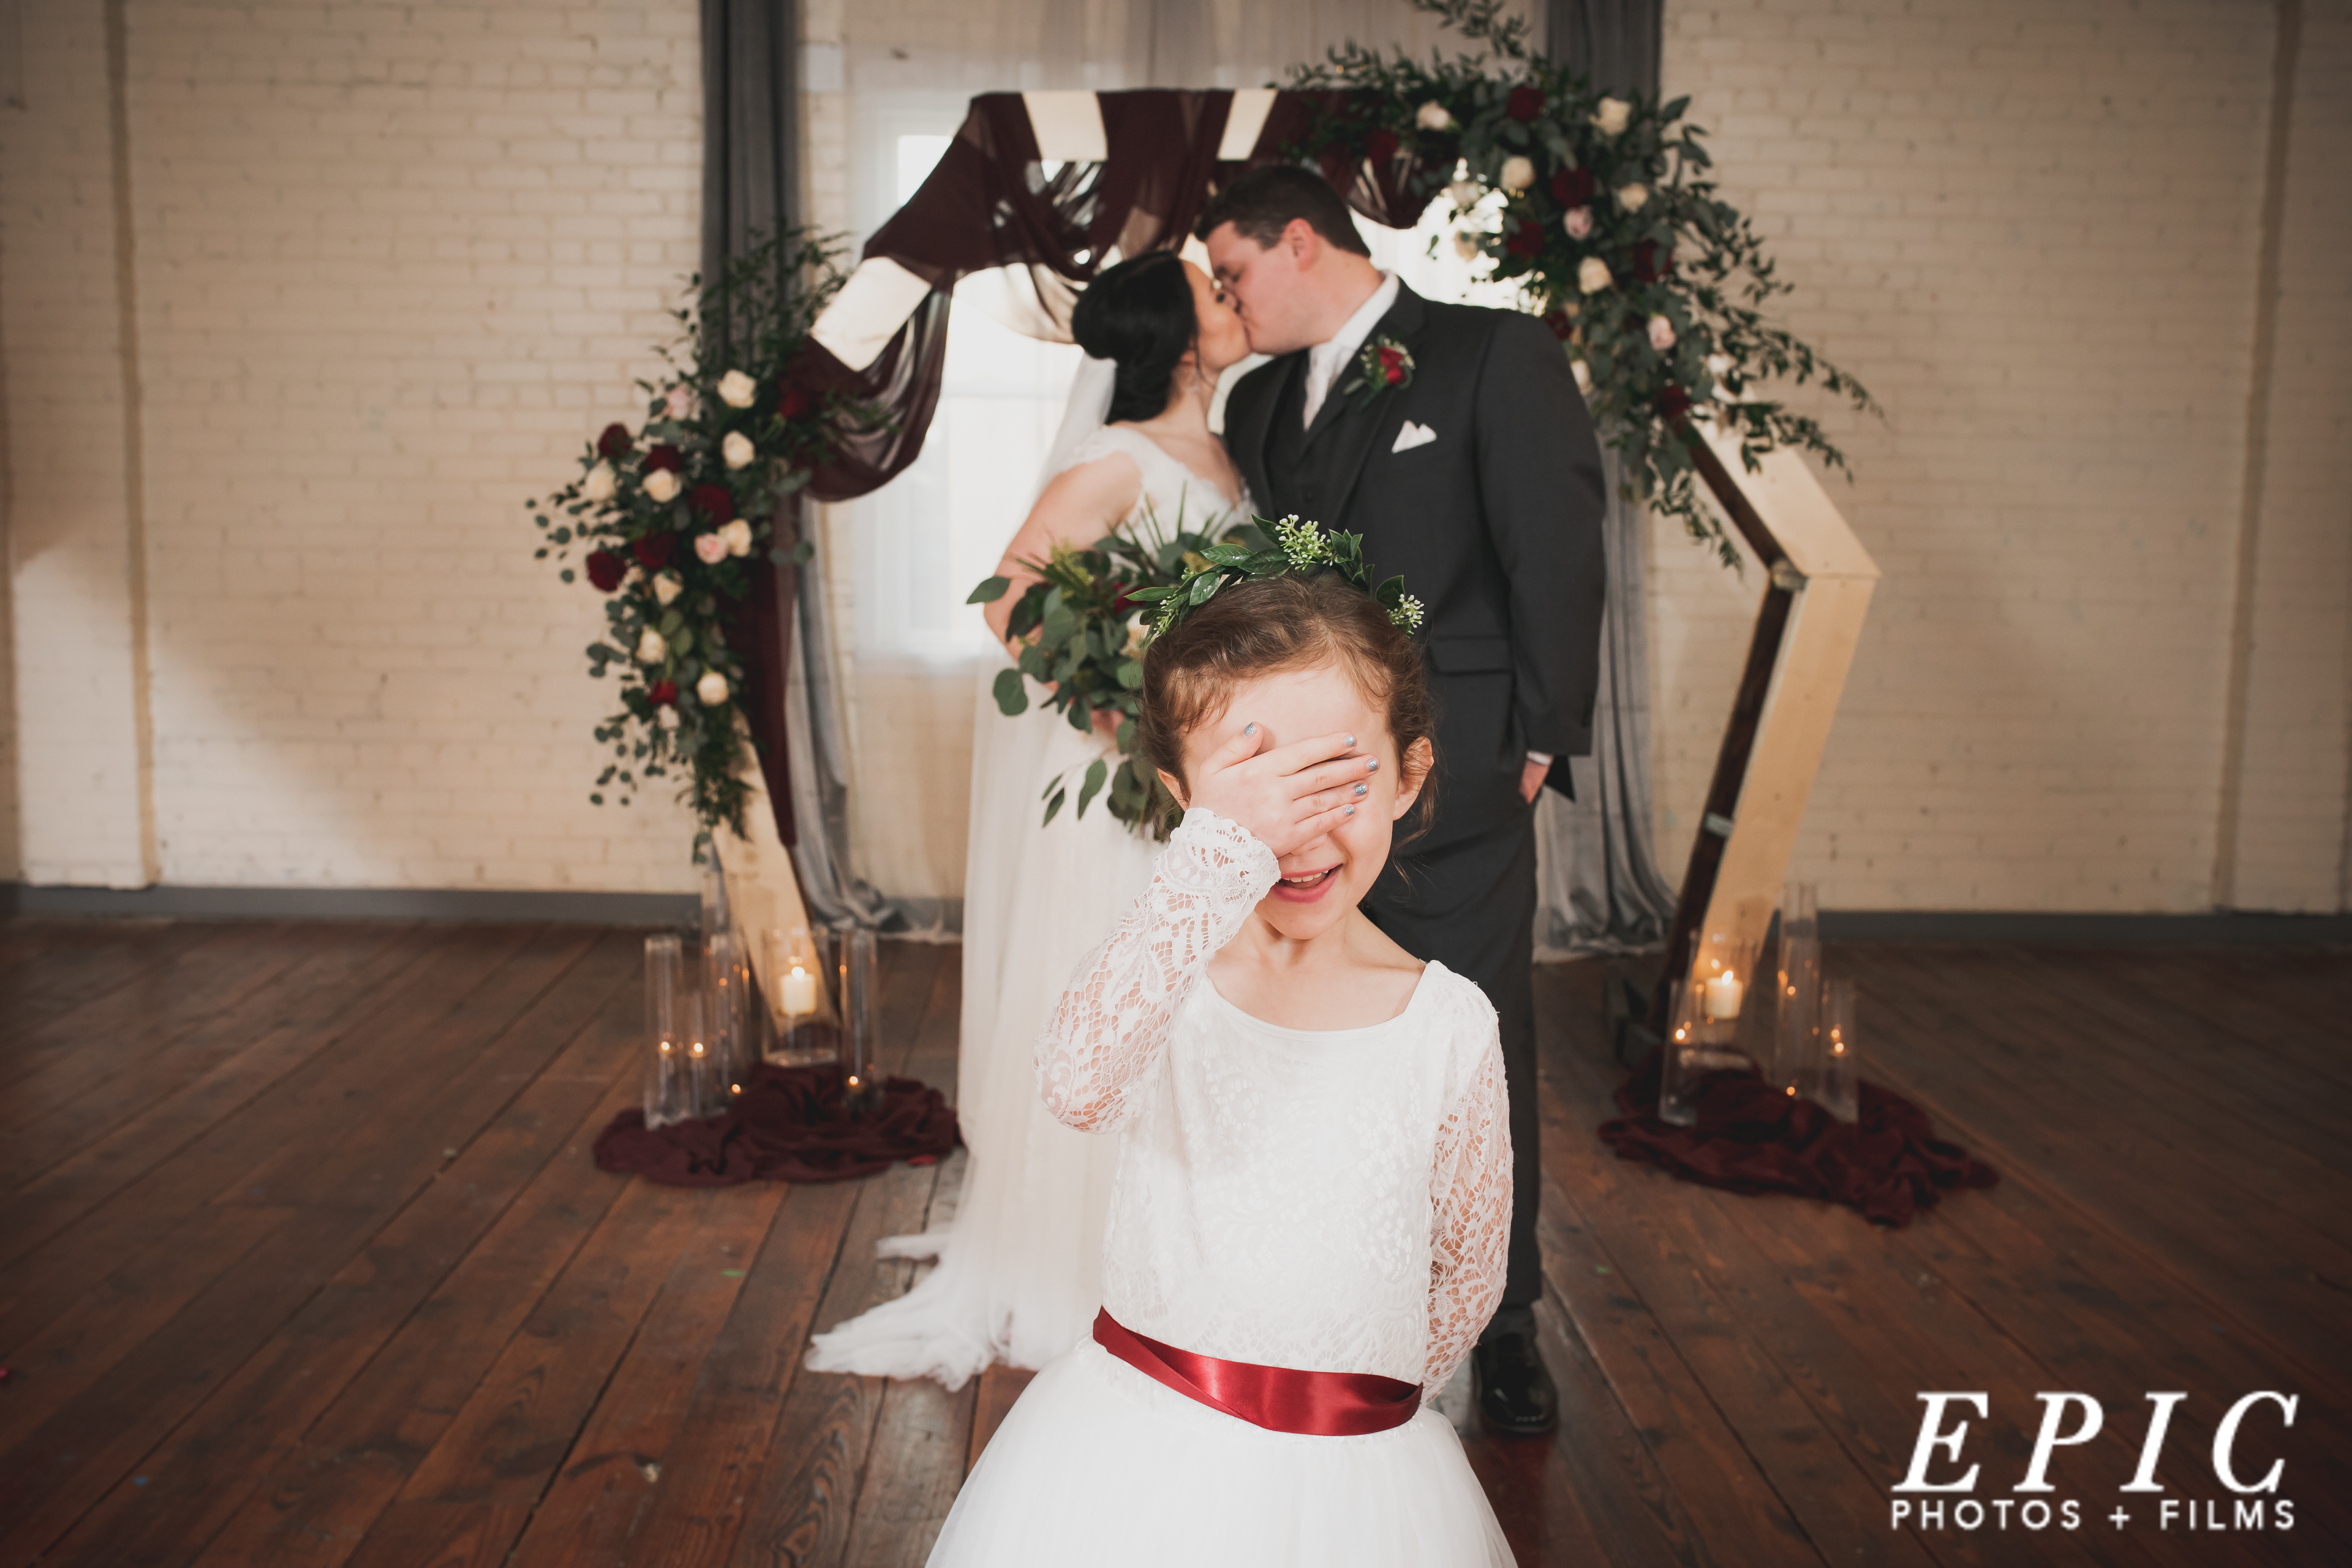 Cute! The flower girl doesn't want to see the bride and groom kissing on their wedding day